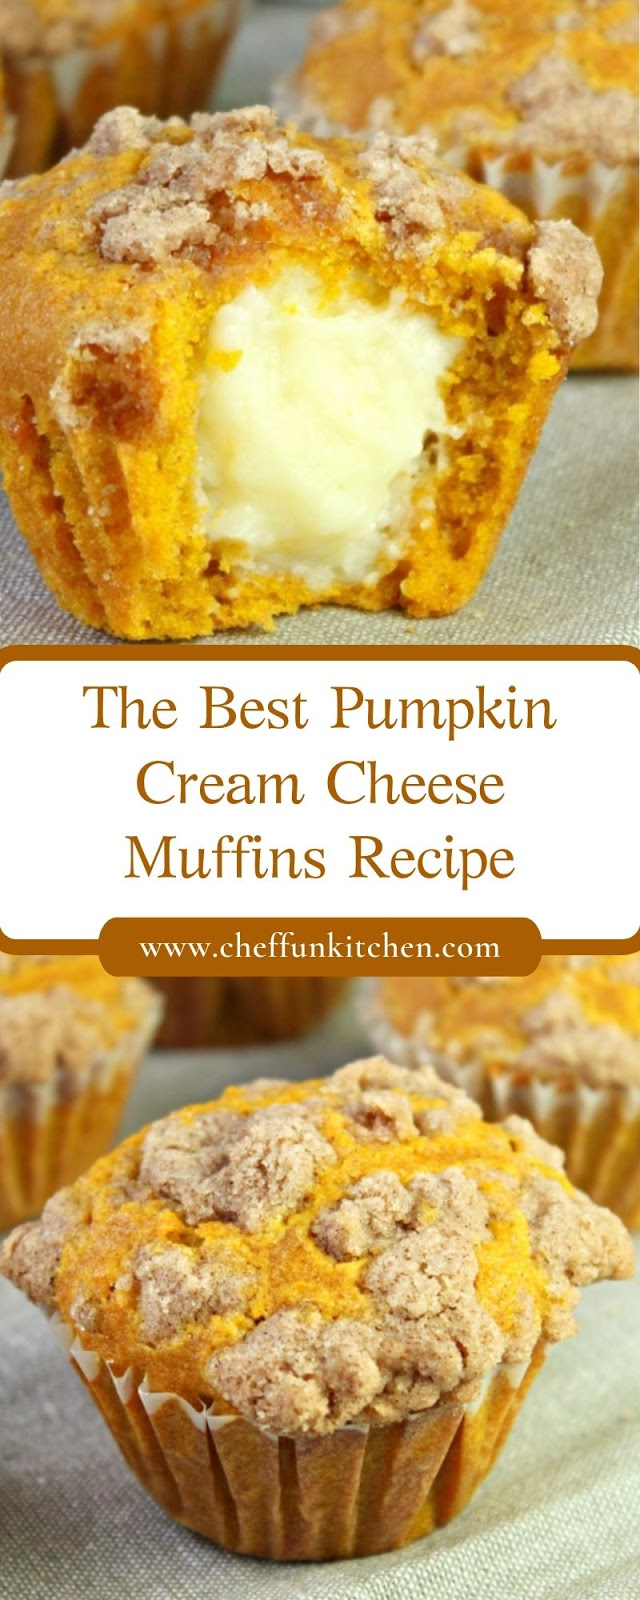 The Best Pumpkin Cream Cheese Muffins Recipe